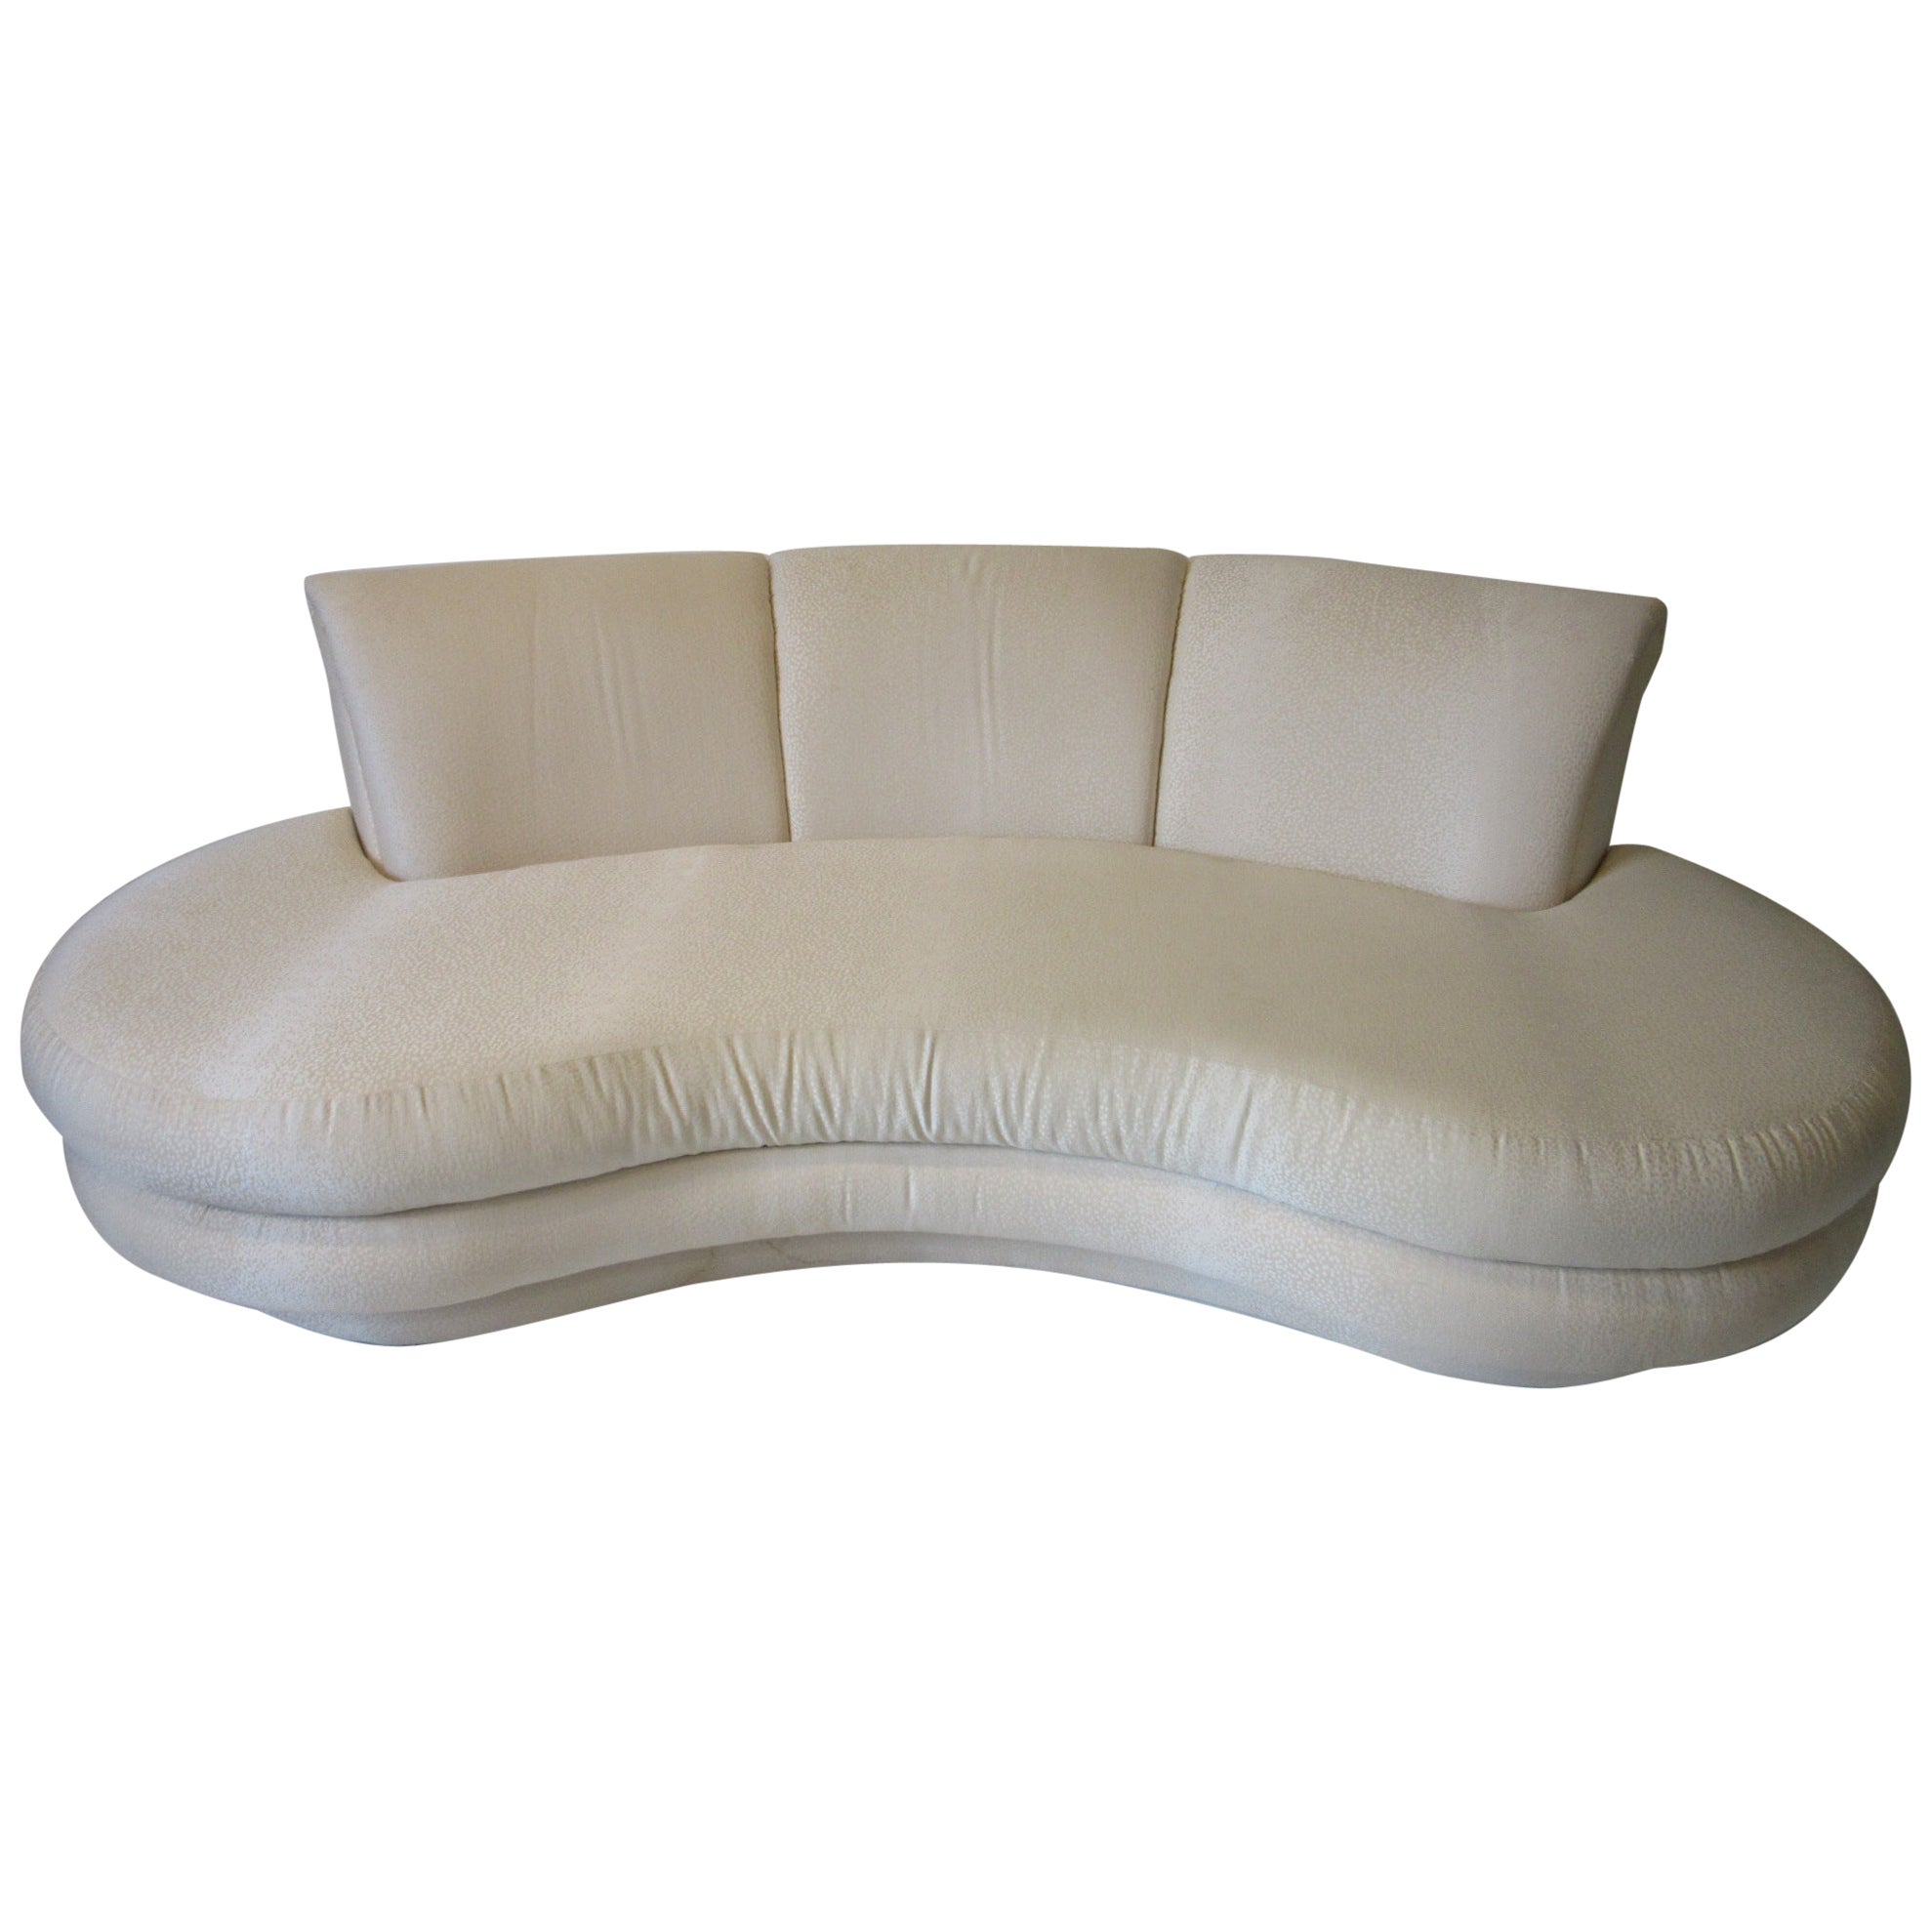 Adrian Pearsall Cloud Sofa for Comfort Designs